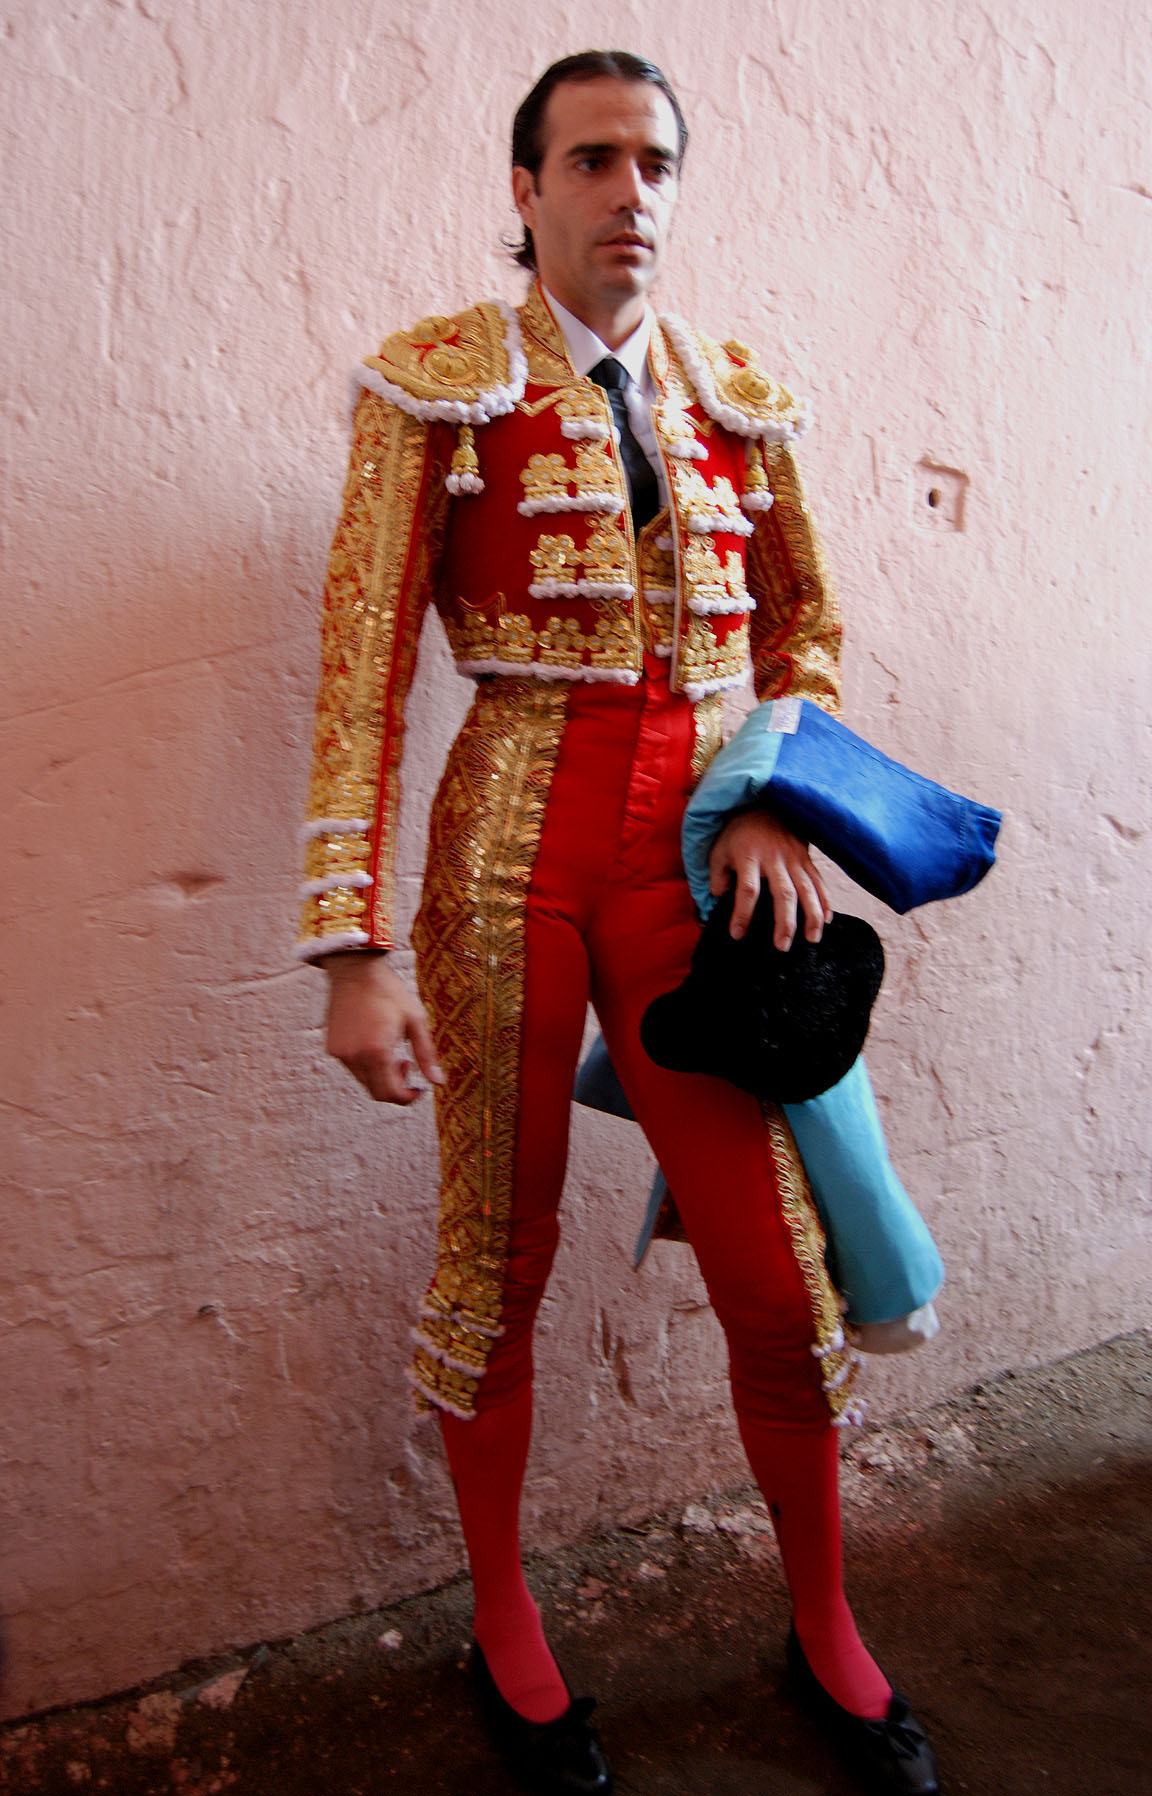 Spanish bullfighter Jose Uceda Leal, <b>Will Amoxicillin Interact With Prevacid</b>, photo c. Jorge Vera 2008